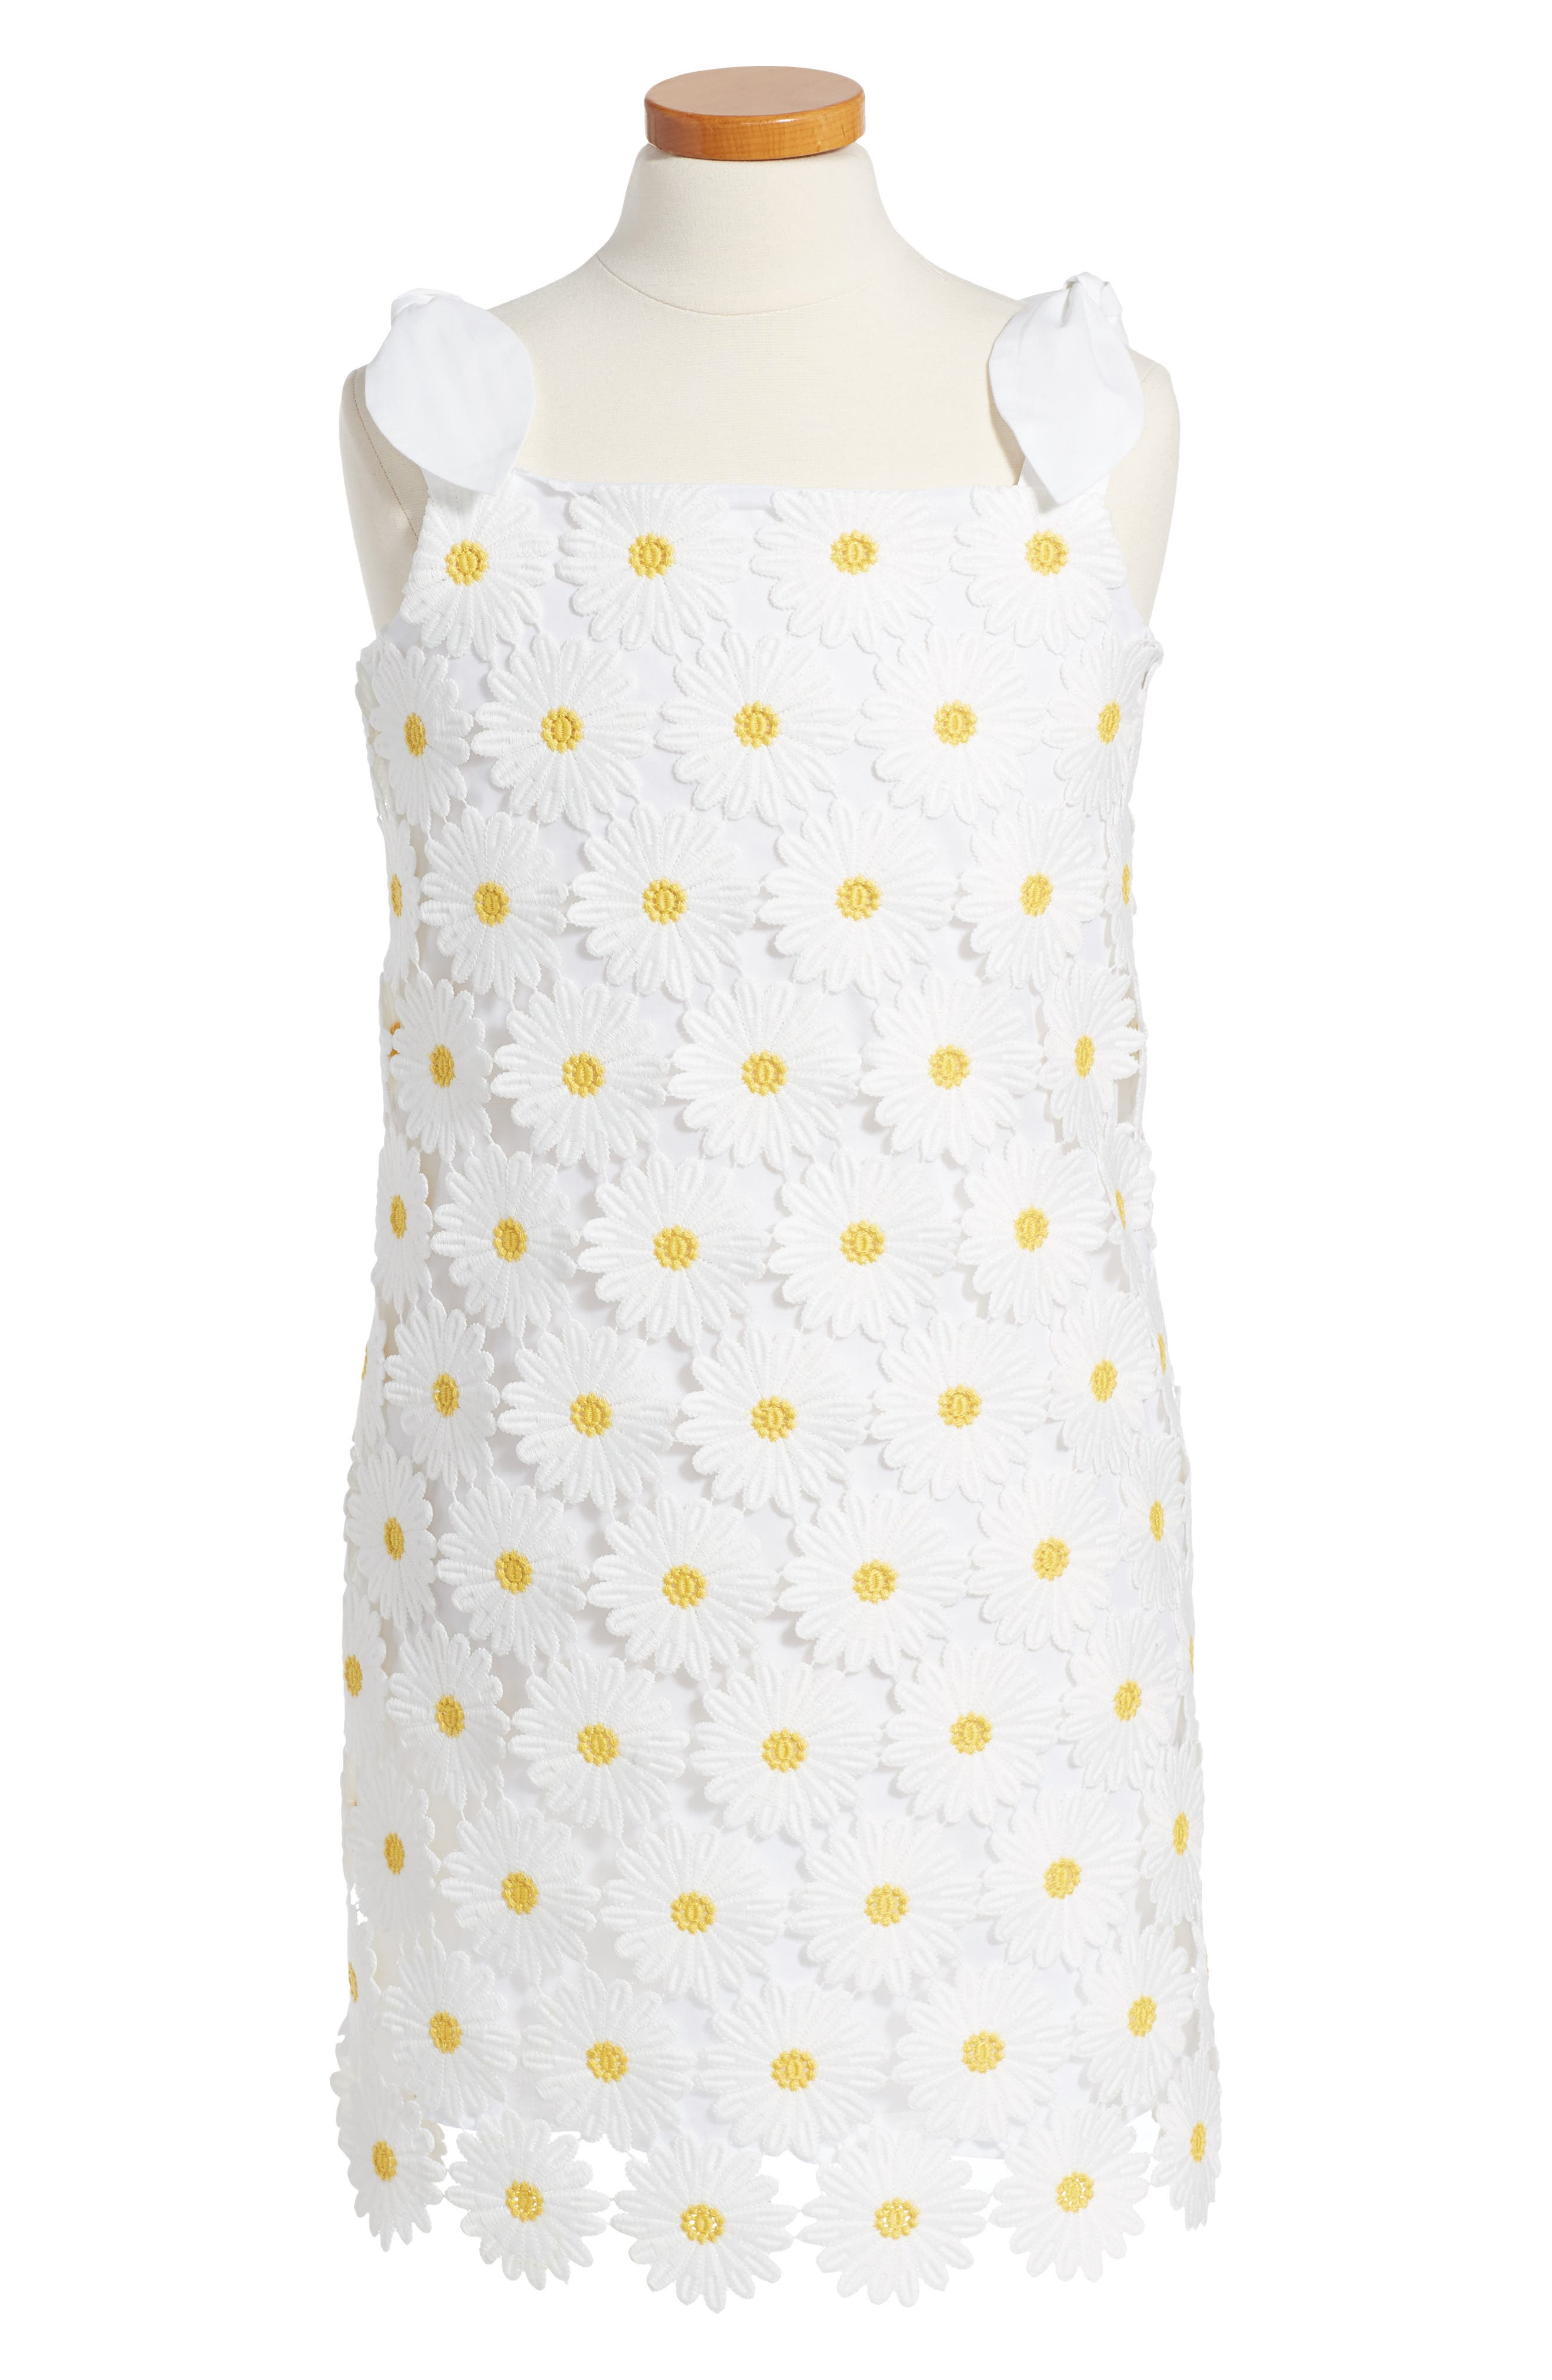 Milly Minis Daisy Embroidered Shift Dress (Toddler Girls, Little Girls & Big Girls)